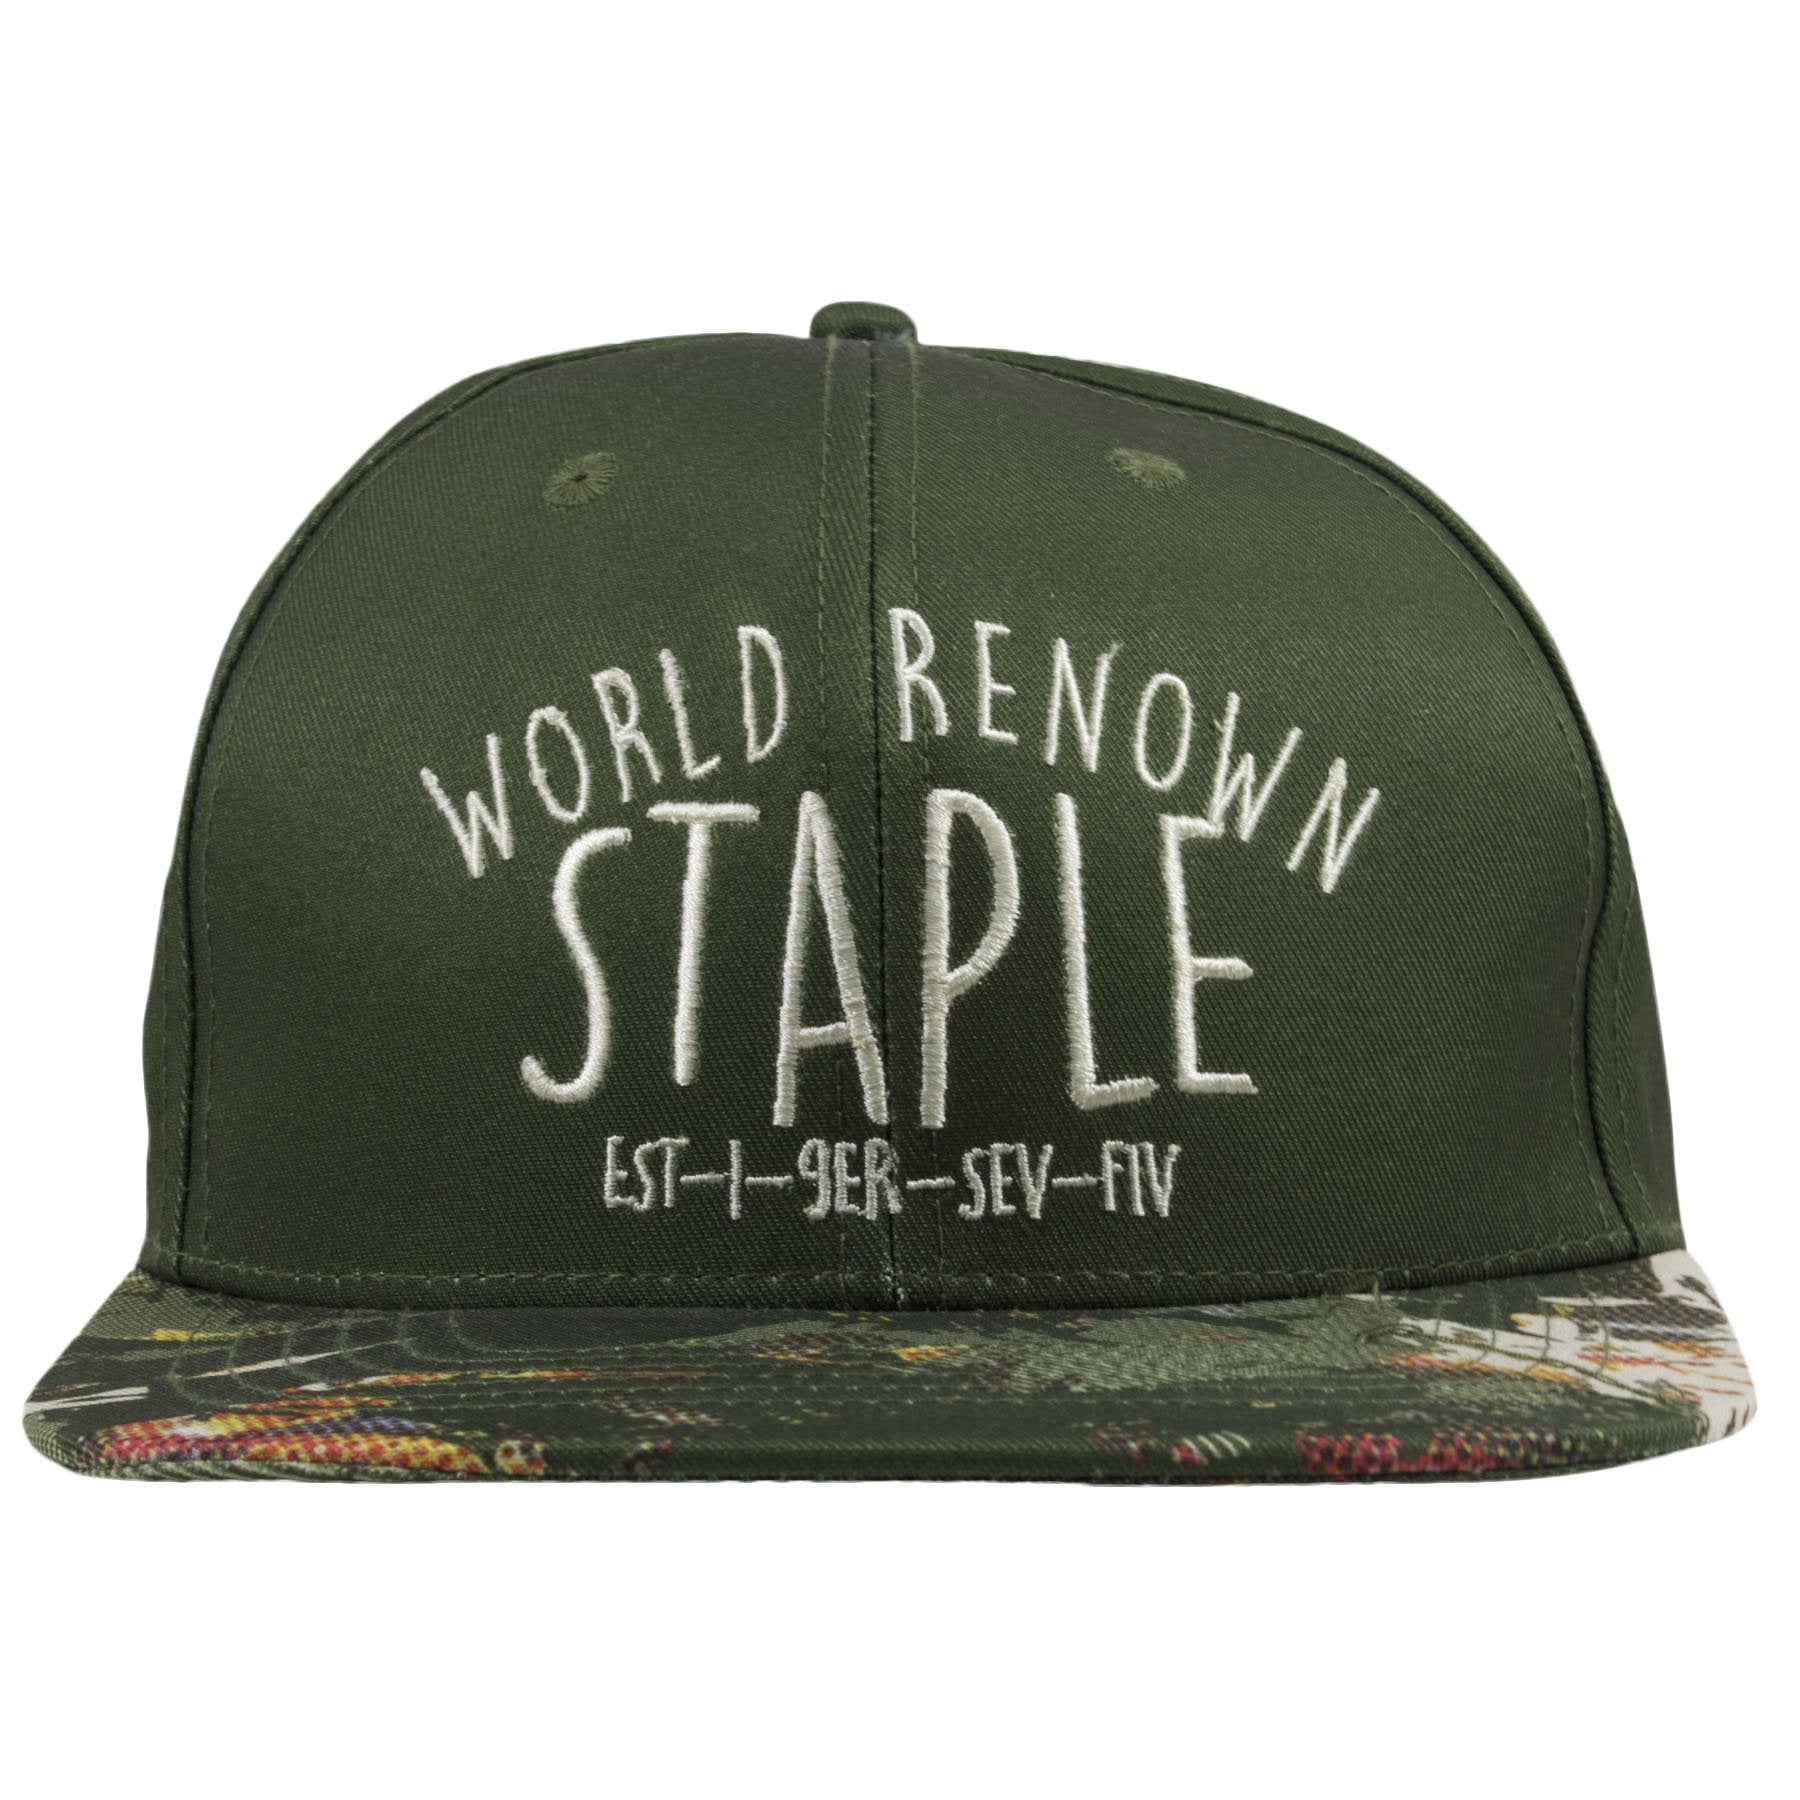 The front of this Camo Staple Snapback hat shows a script of World Renown  Staple embroidered 8e3361495ea